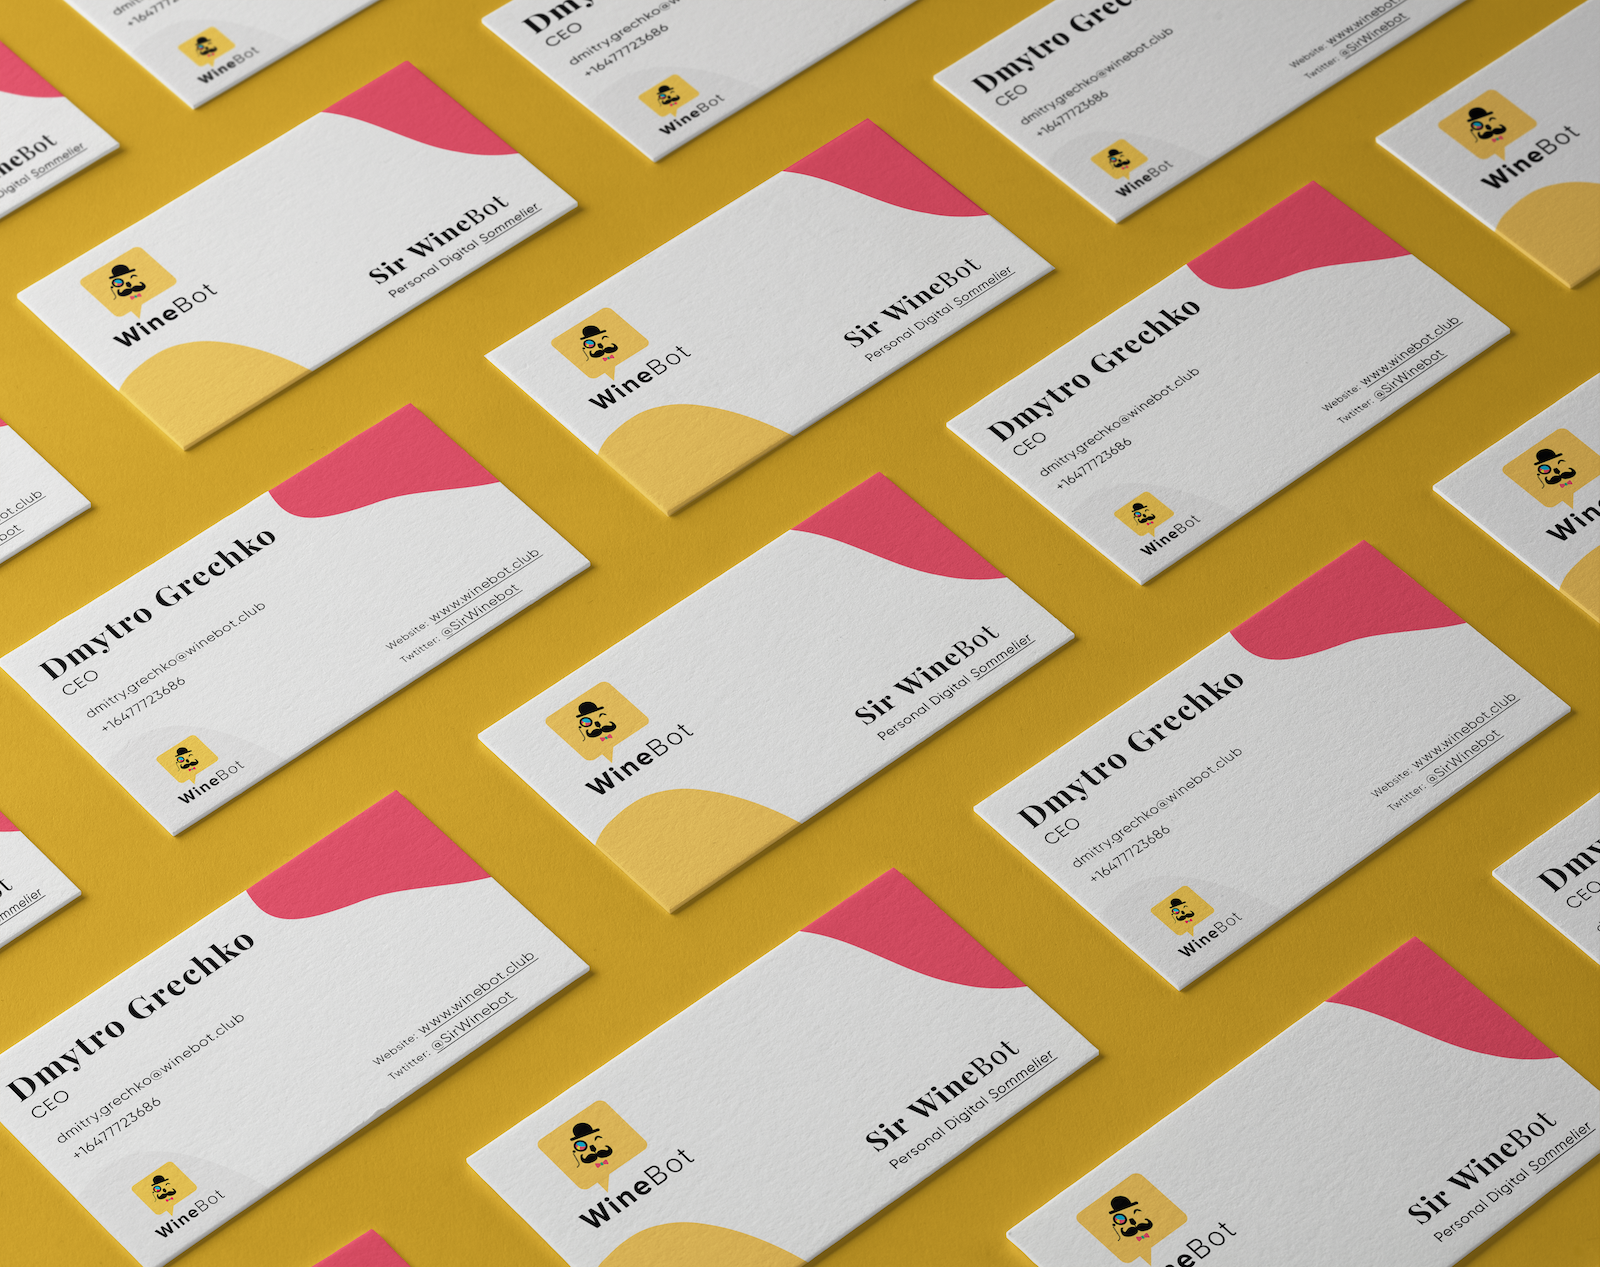 Sir WineBot Branded Business Cards